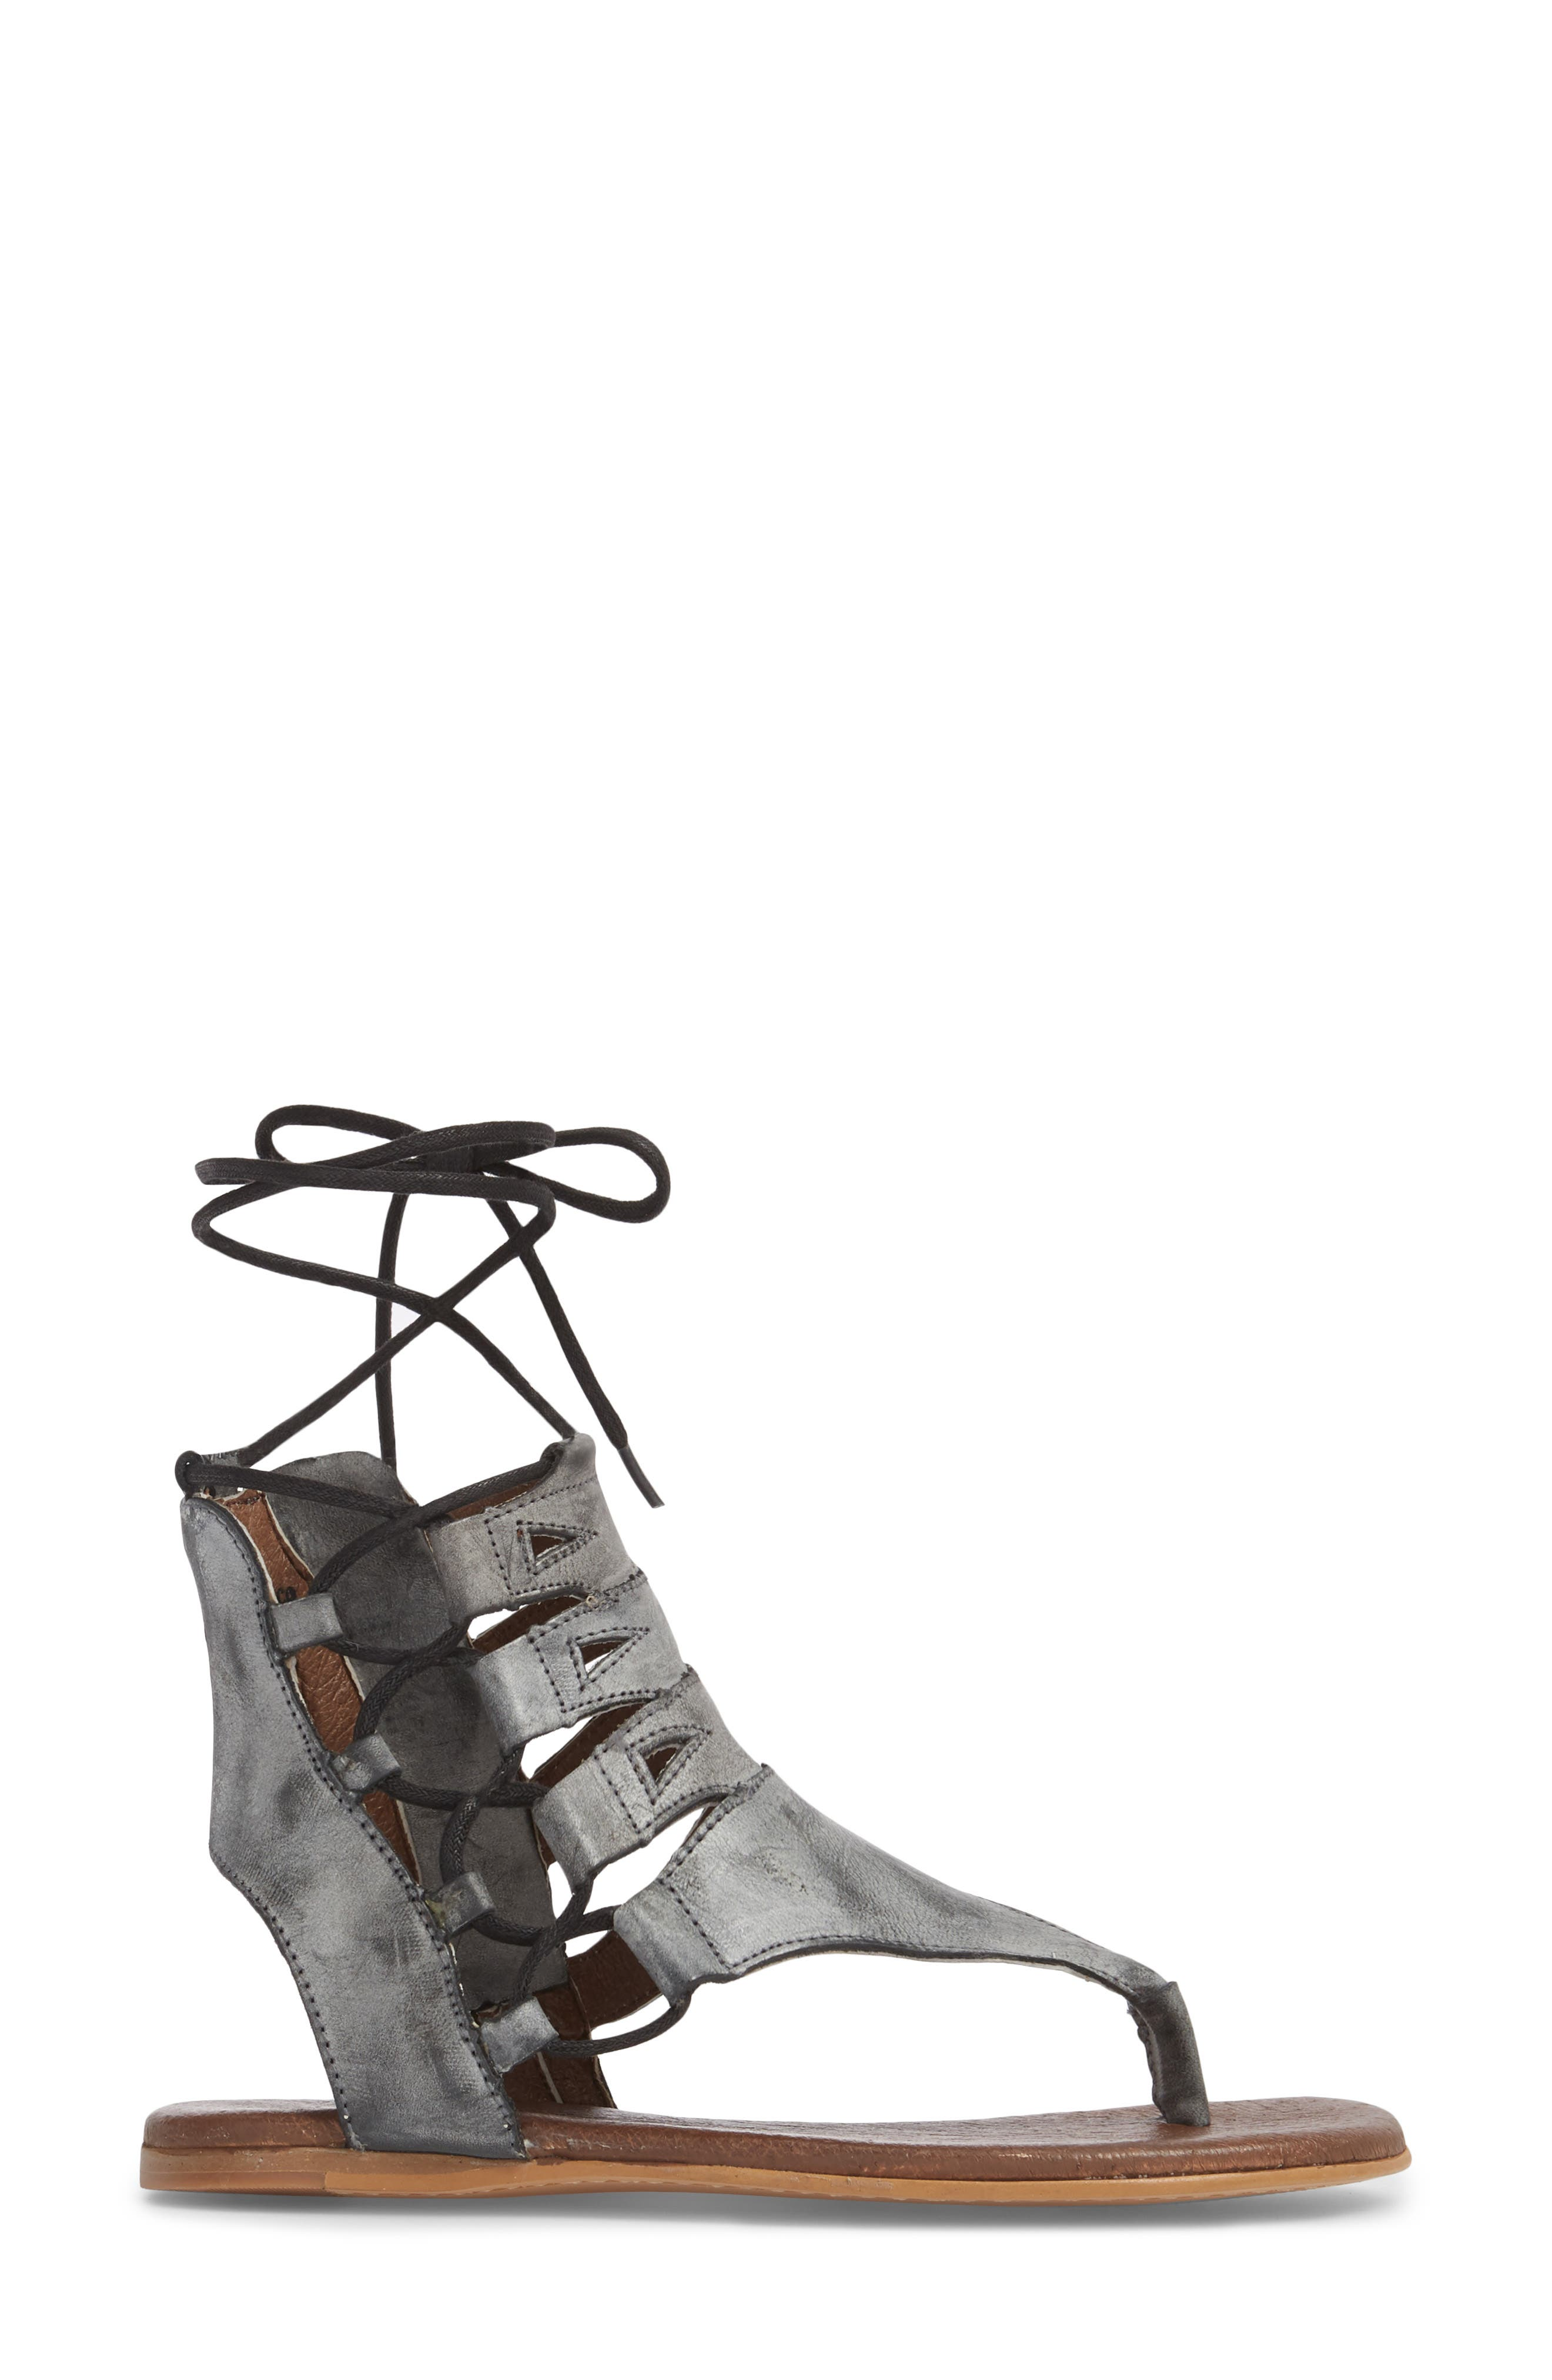 Rosalinda Tall Sandal,                             Alternate thumbnail 3, color,                             001